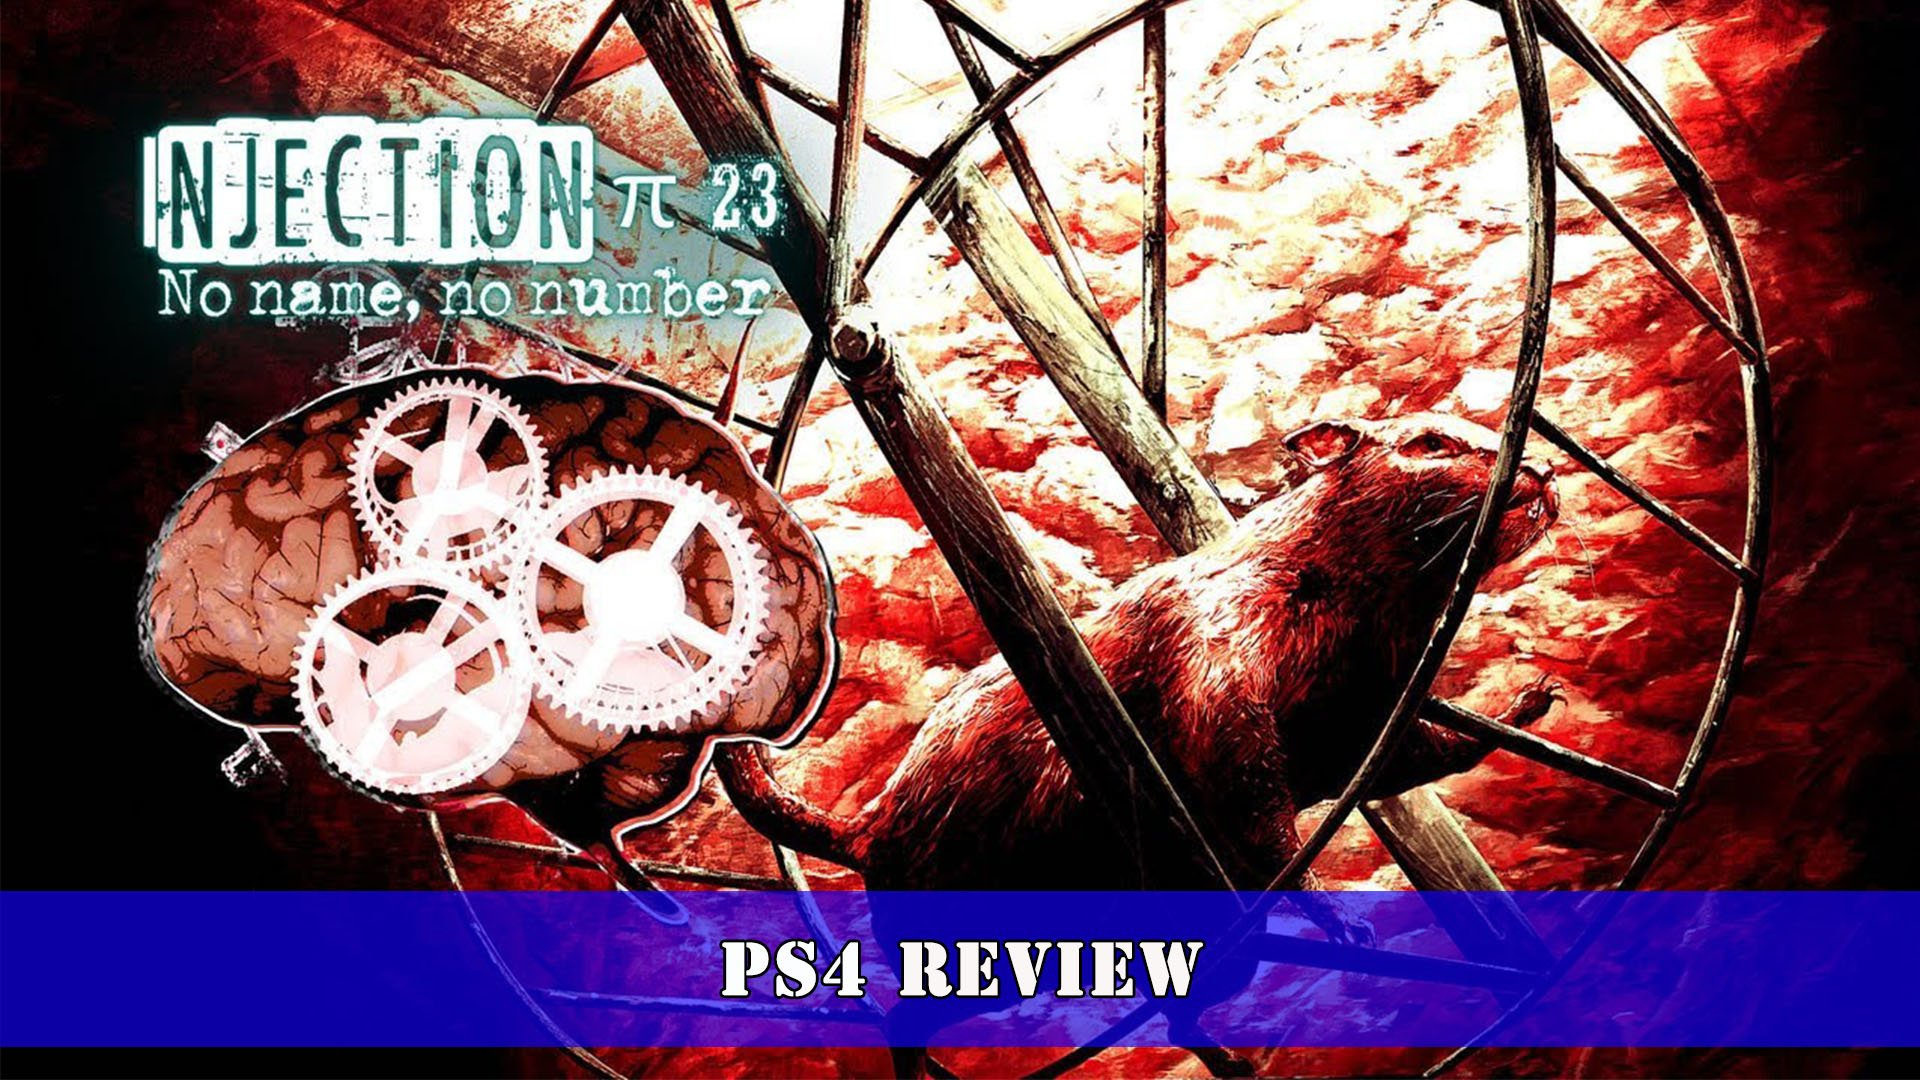 Injection π 23 'No name No number' (PS4) Review